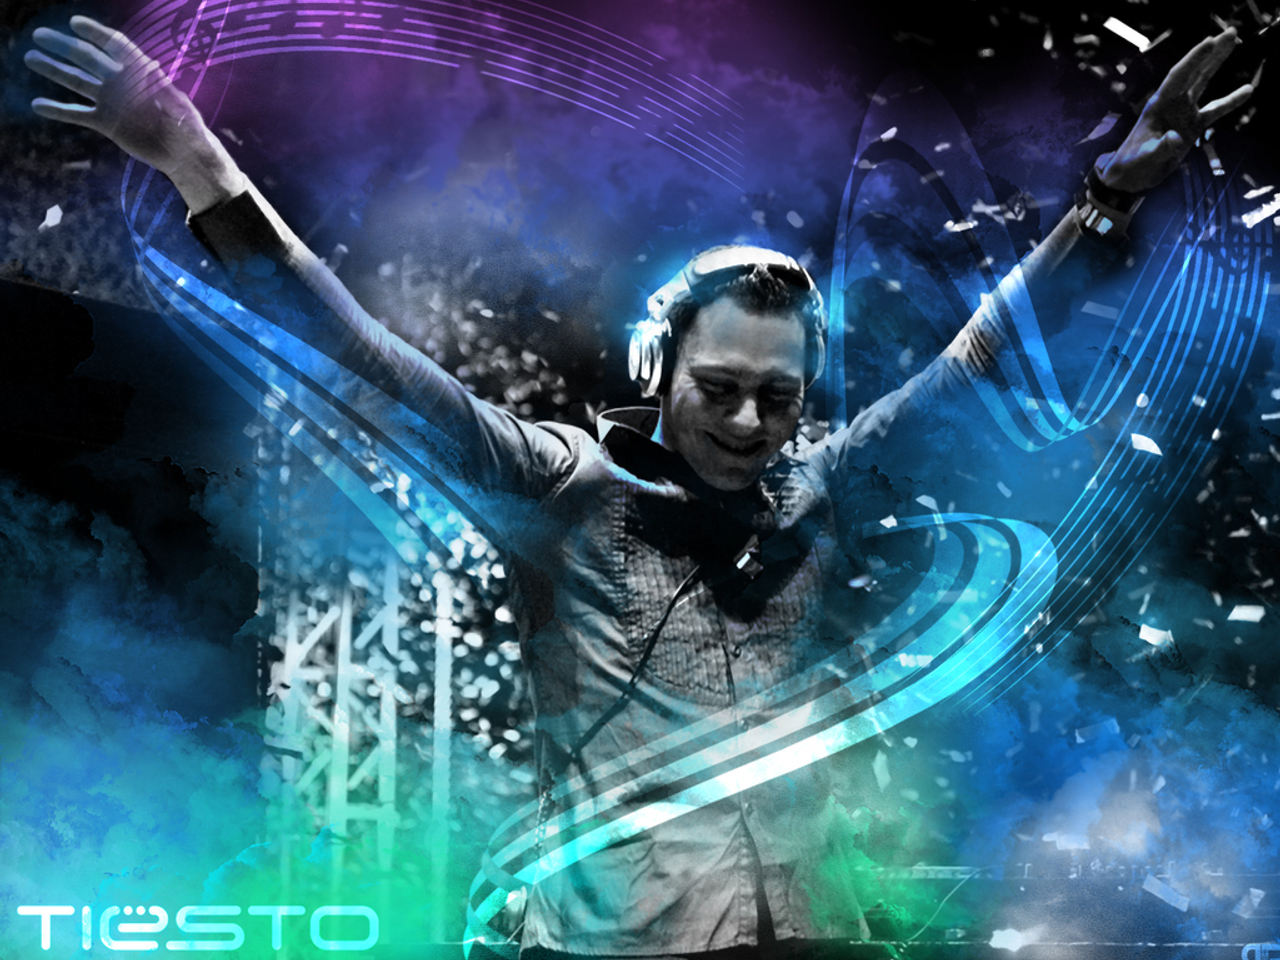 Listen Tiesto Squeeze Mp3 download - DJ Frank E ft